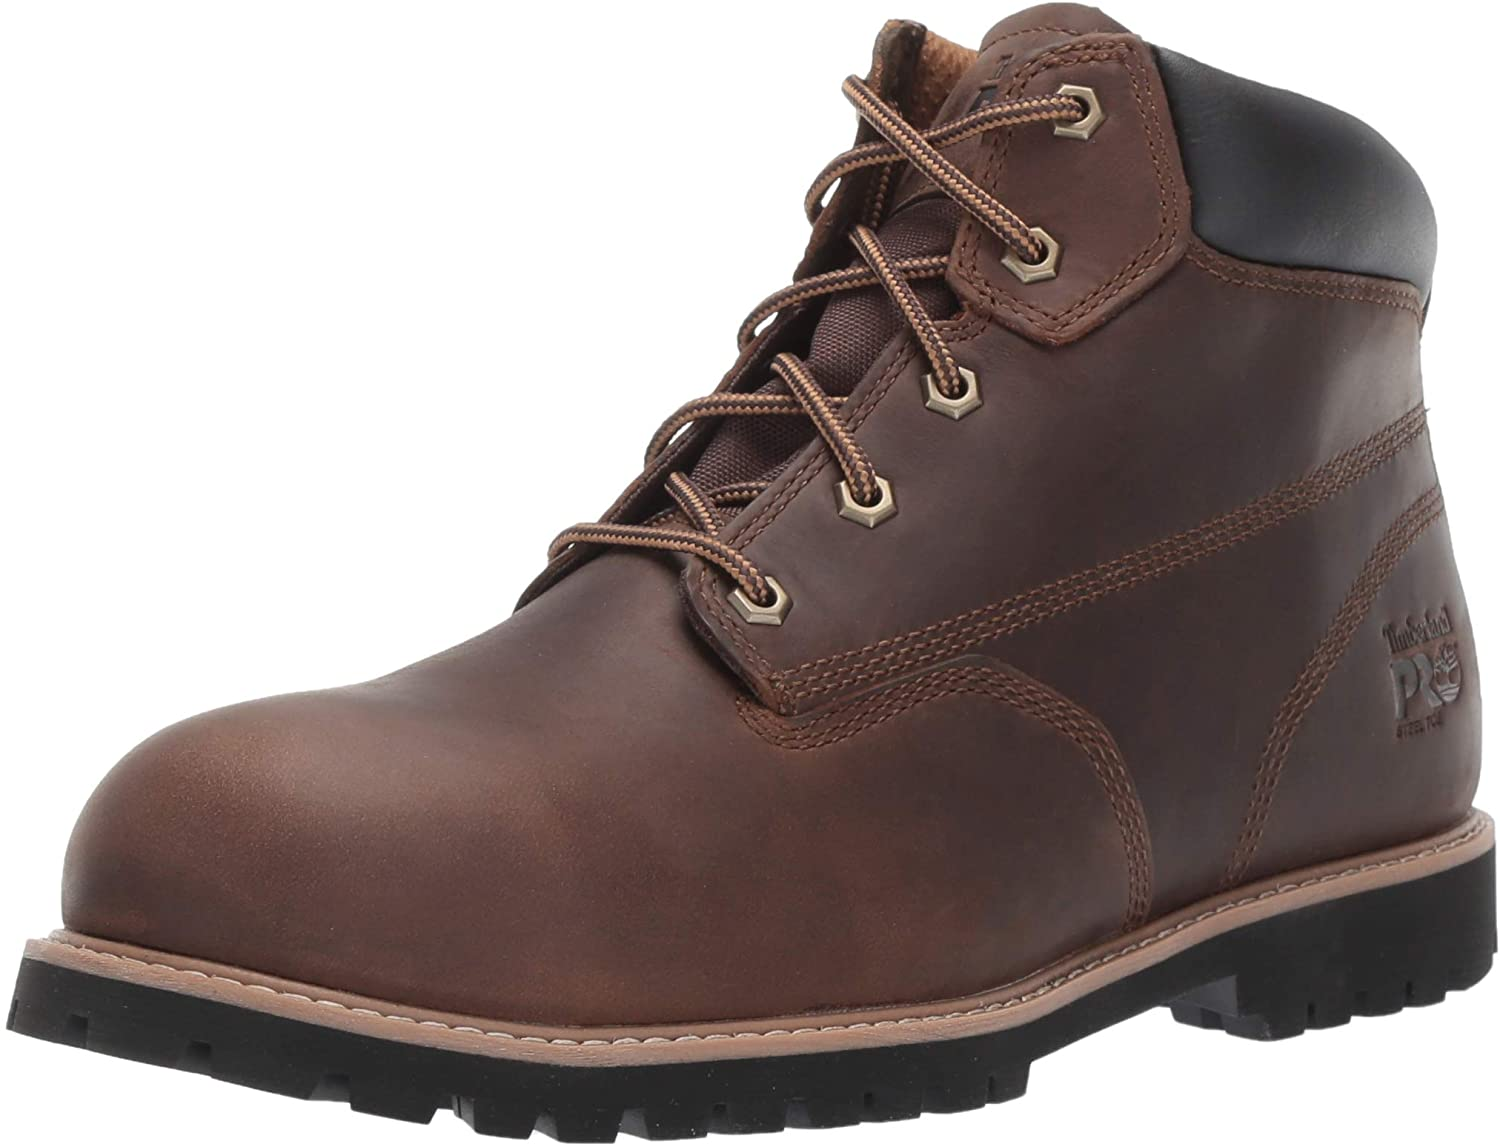 Timberland PRO Men's Gritstone 6 Inch Steel Safety Toe Industrial Work Boot, Brown, 15: Shoes